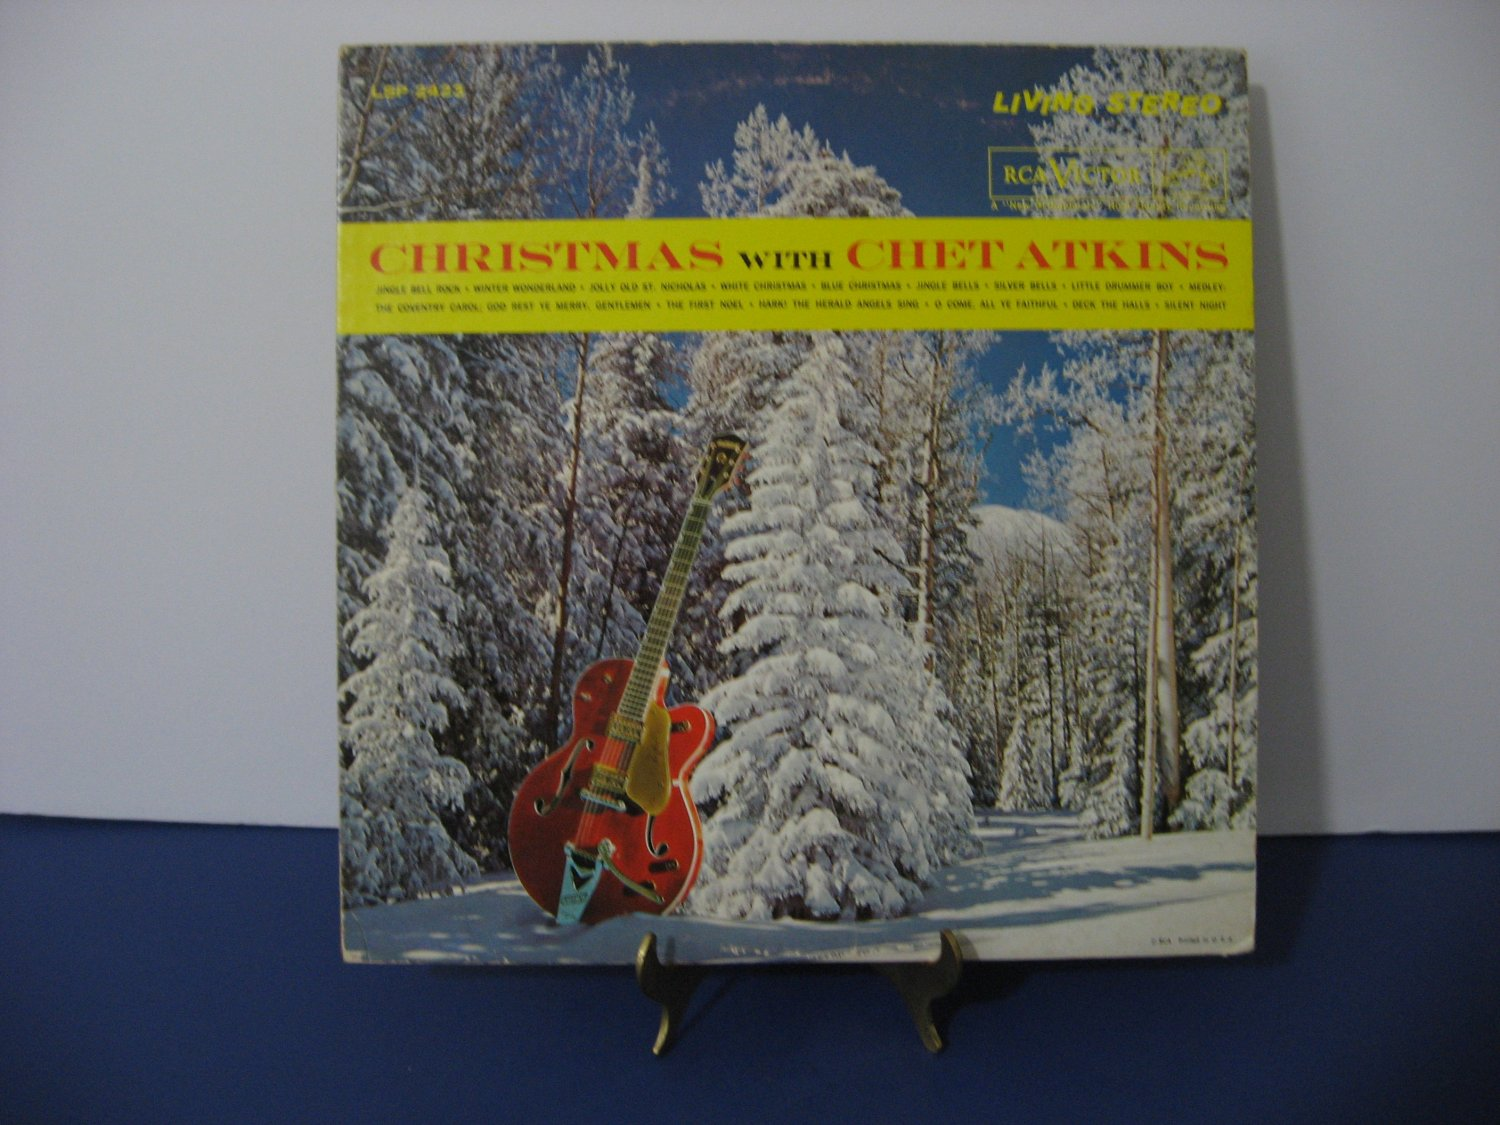 Chet Atkins - Christmas With Chet Atkins - Circa 1961